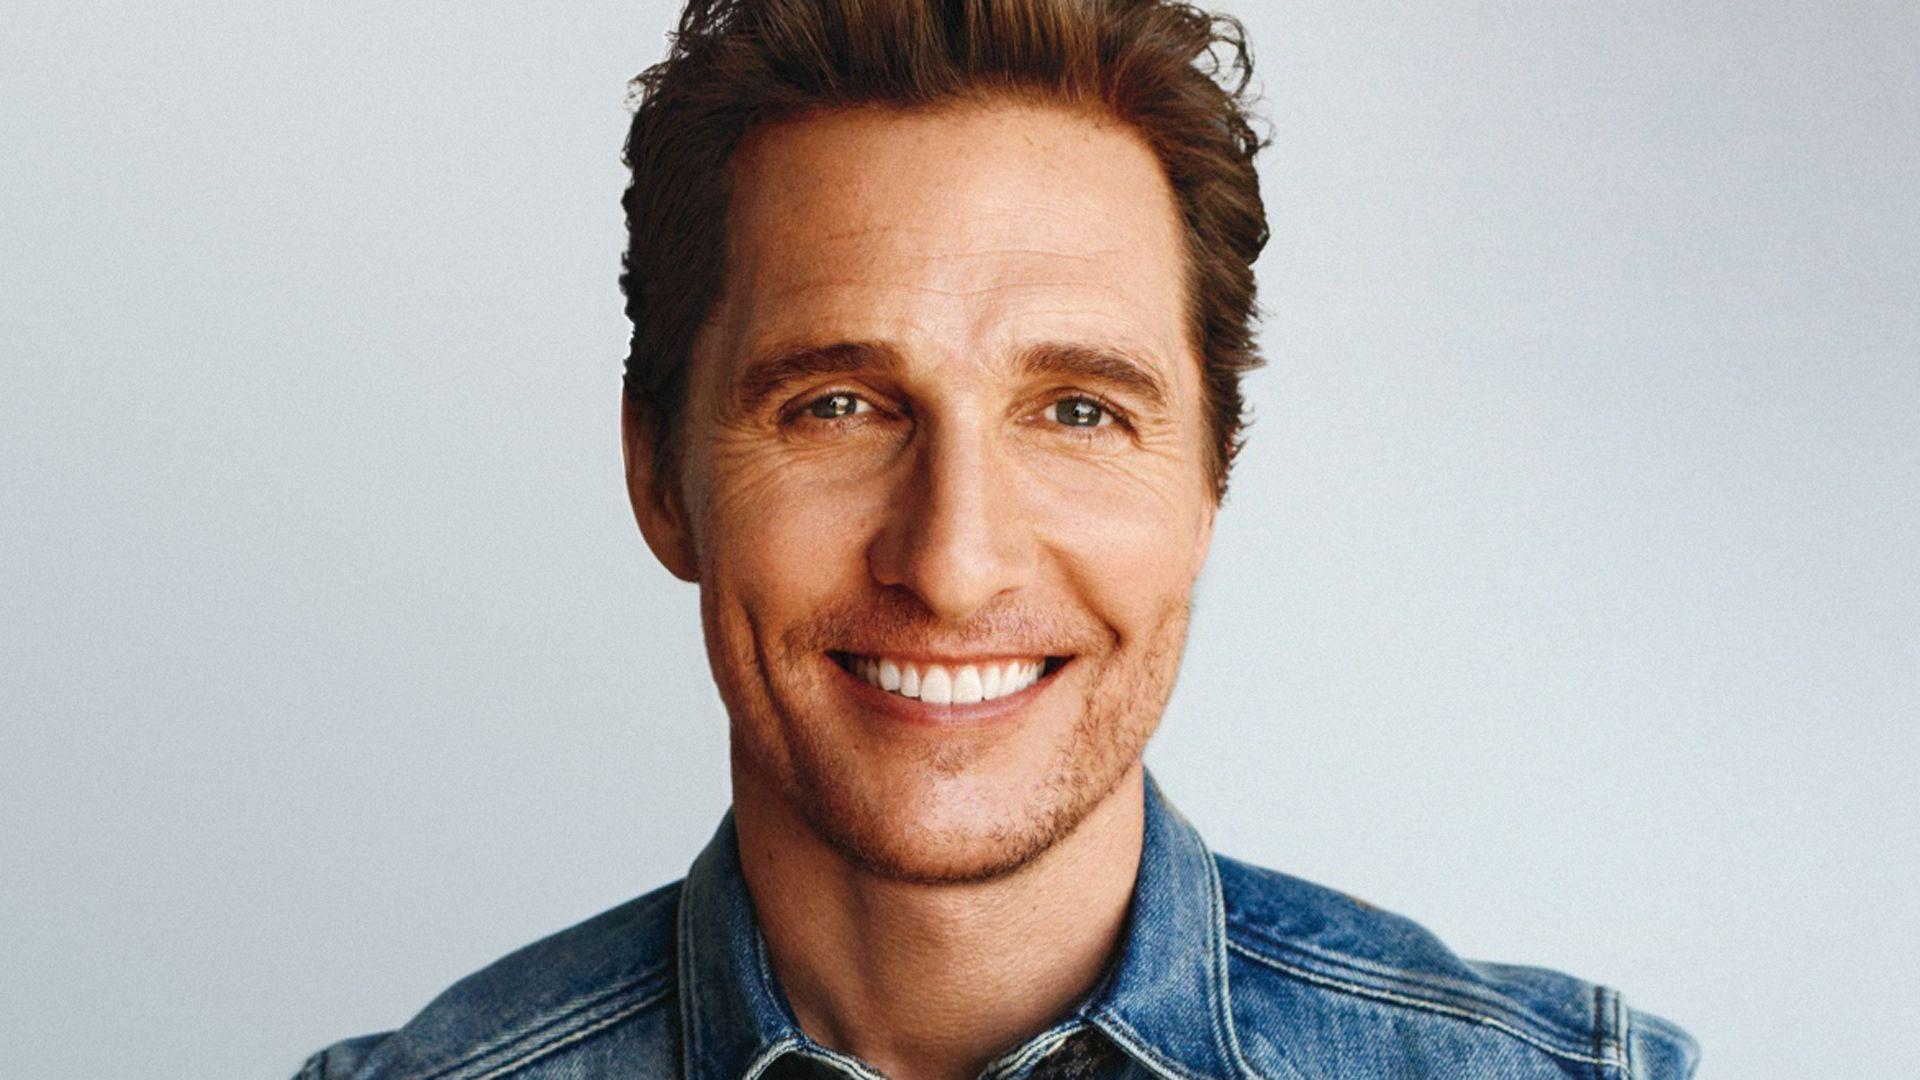 Matthew McConaughey Smile Wallpapers 56132 1920x1080 px